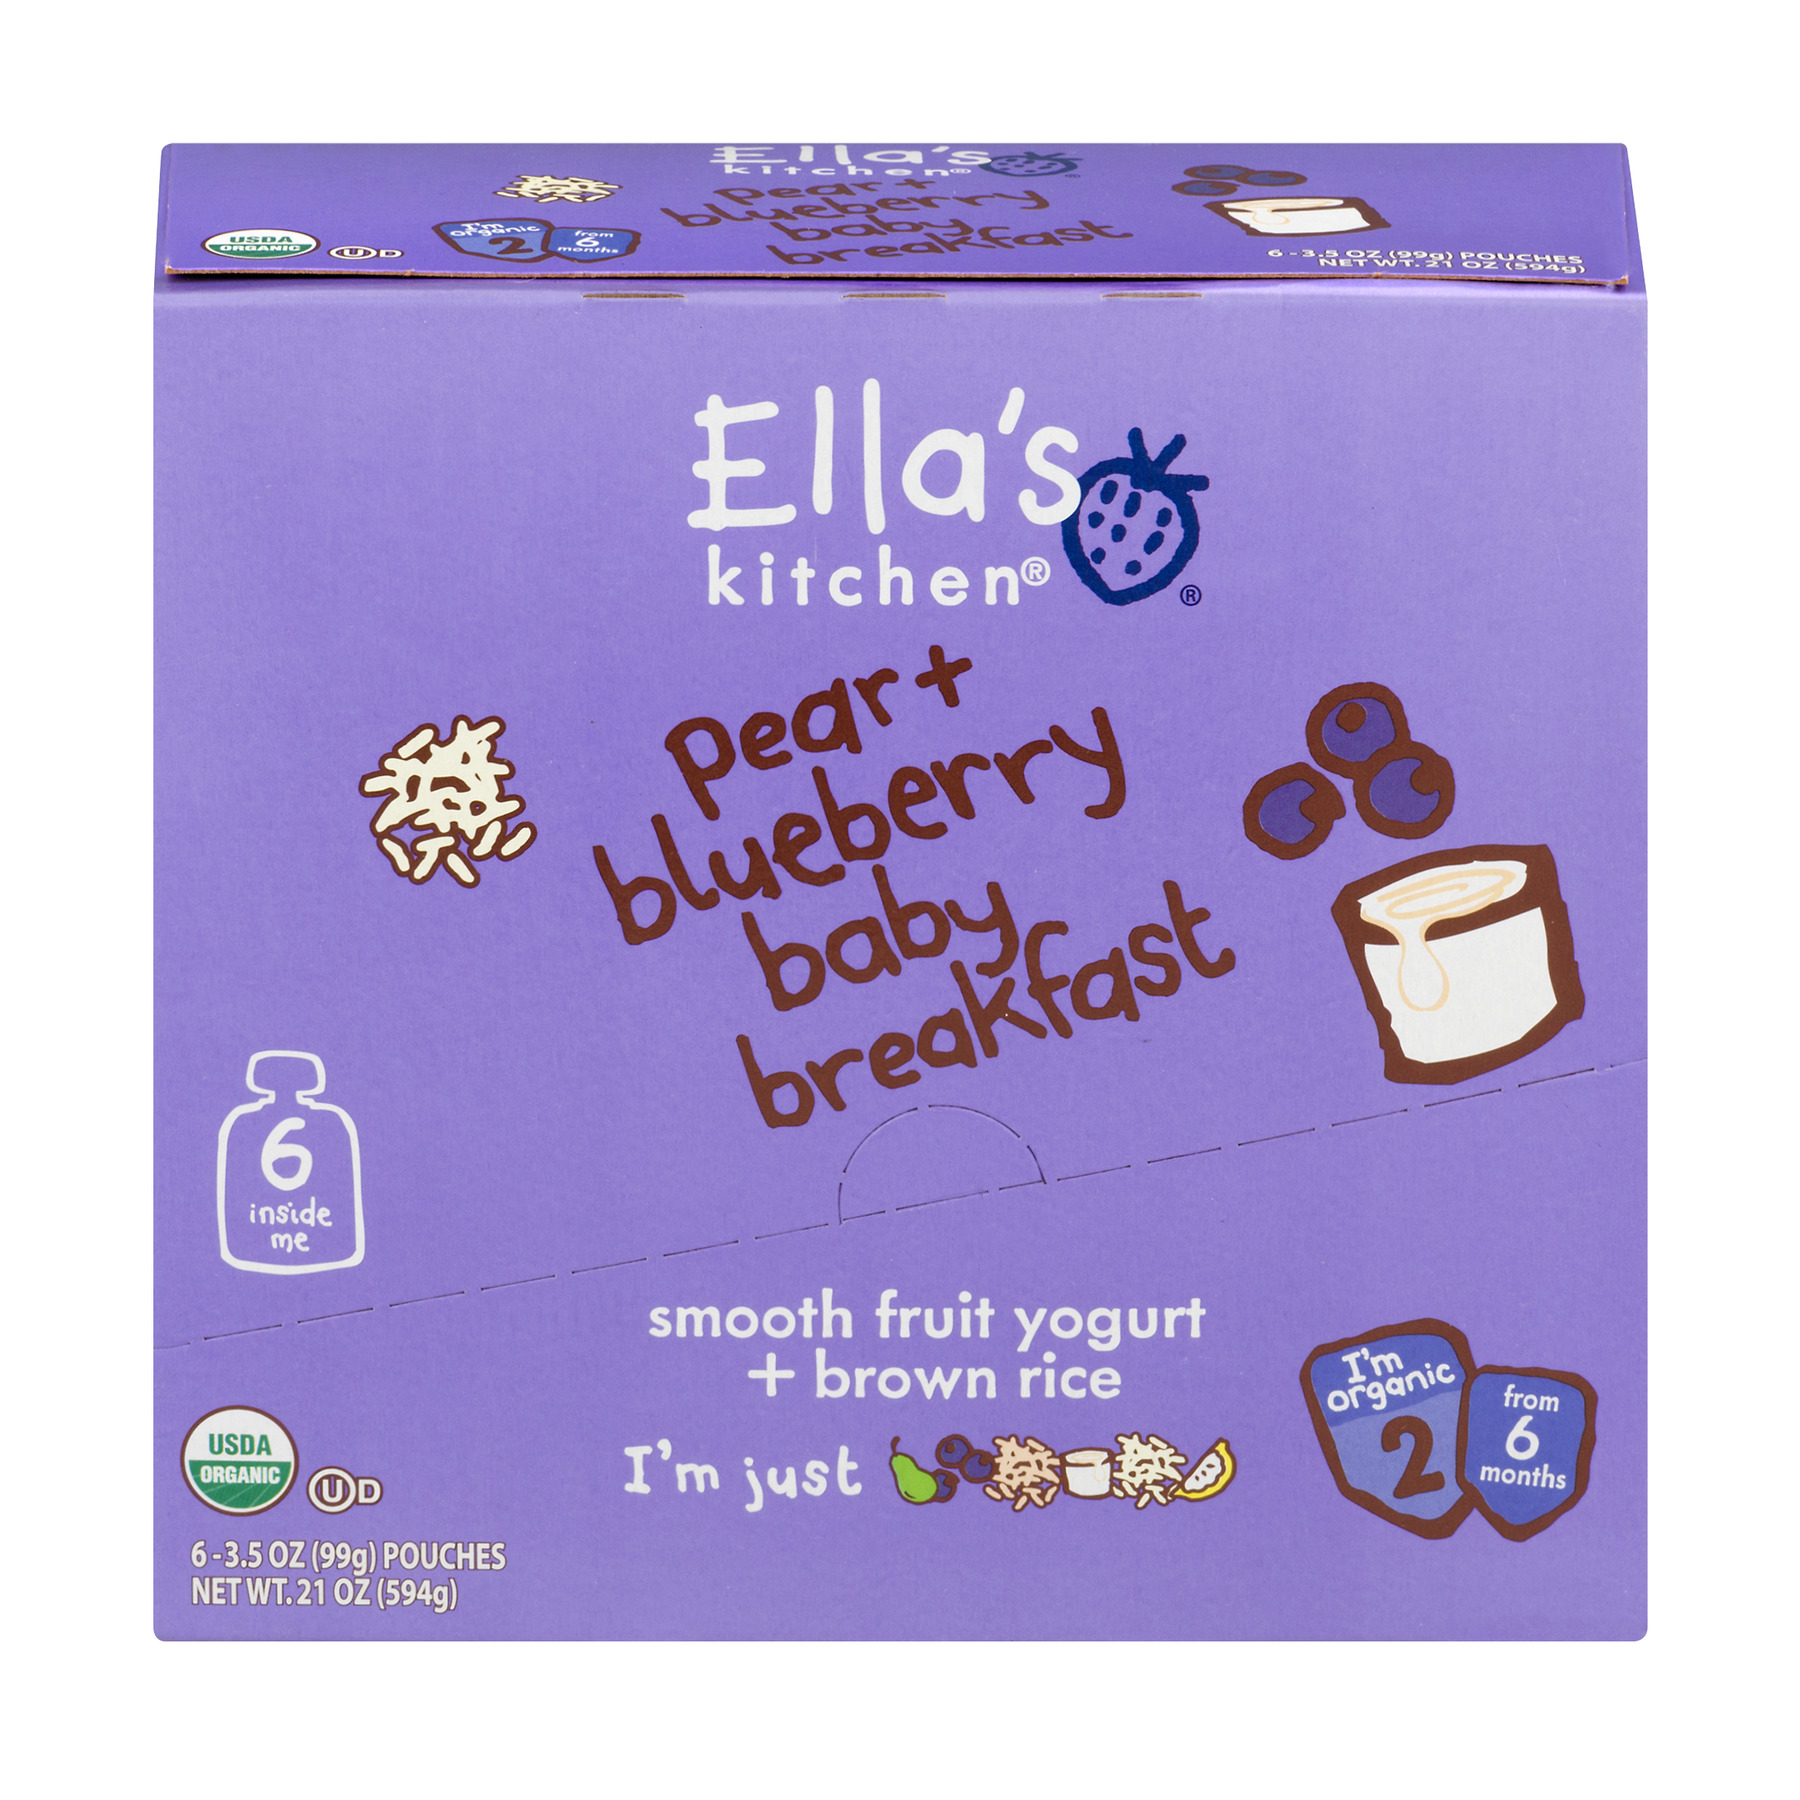 Ella's Kitchen Organic Baby Food Organic Pear + Blueberry Baby Breakfast 6+ Months , 3.5 oz, 6 Pack